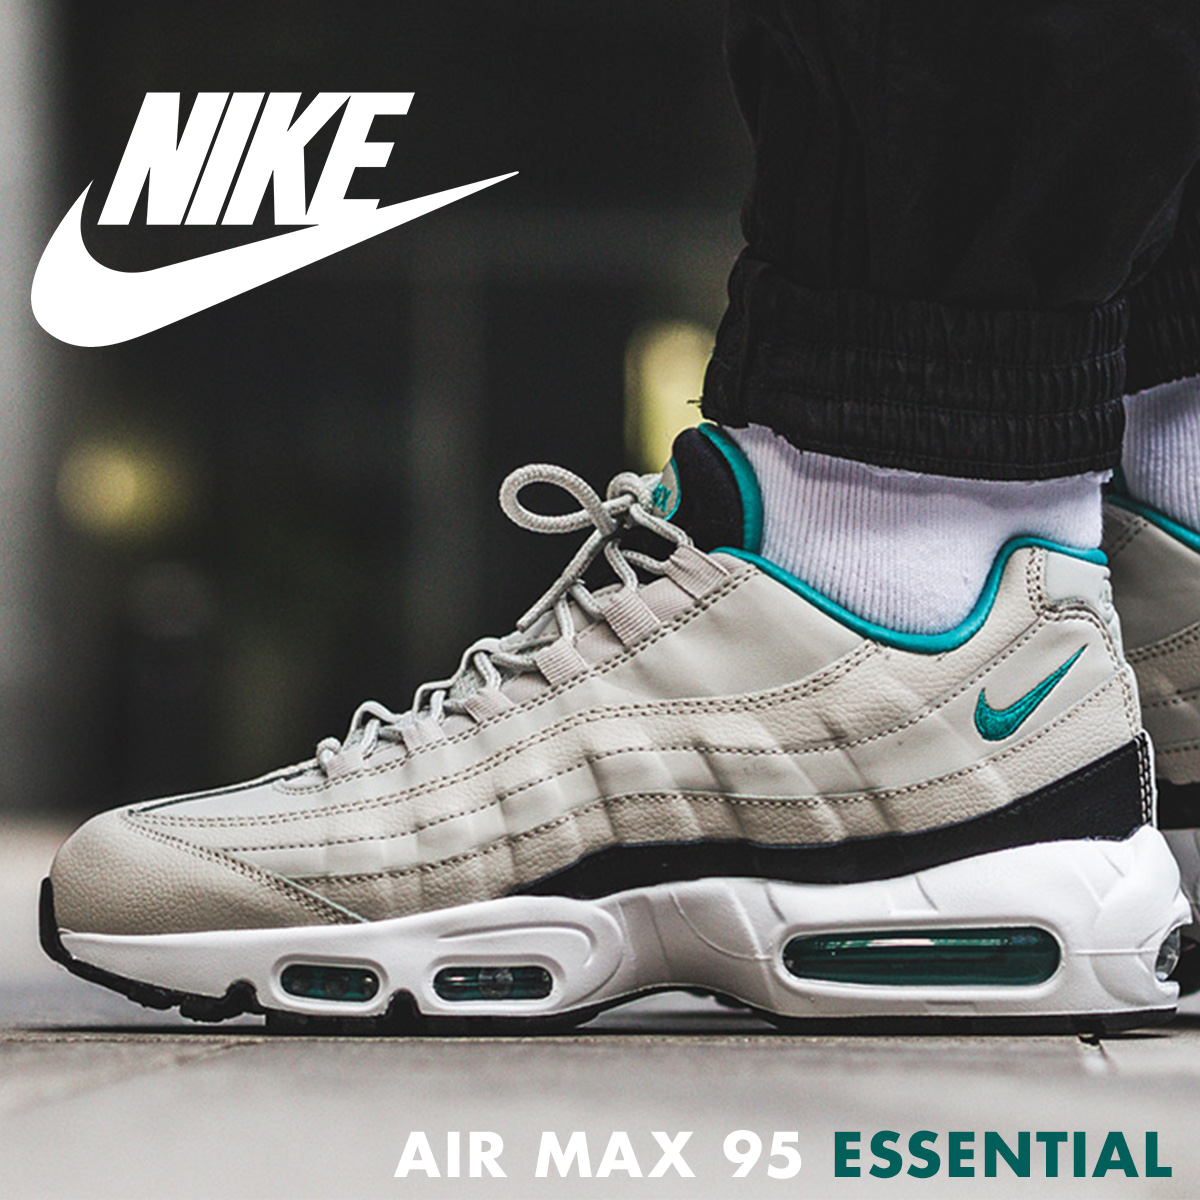 new arrival bd21e a3586 NIKE AIR MAX 95 ESSENTIAL Kie Ney AMAX 95 essential sneakers men  538,416-015 off-white  load planned Shinnyu load in reservation product 2 9  containing